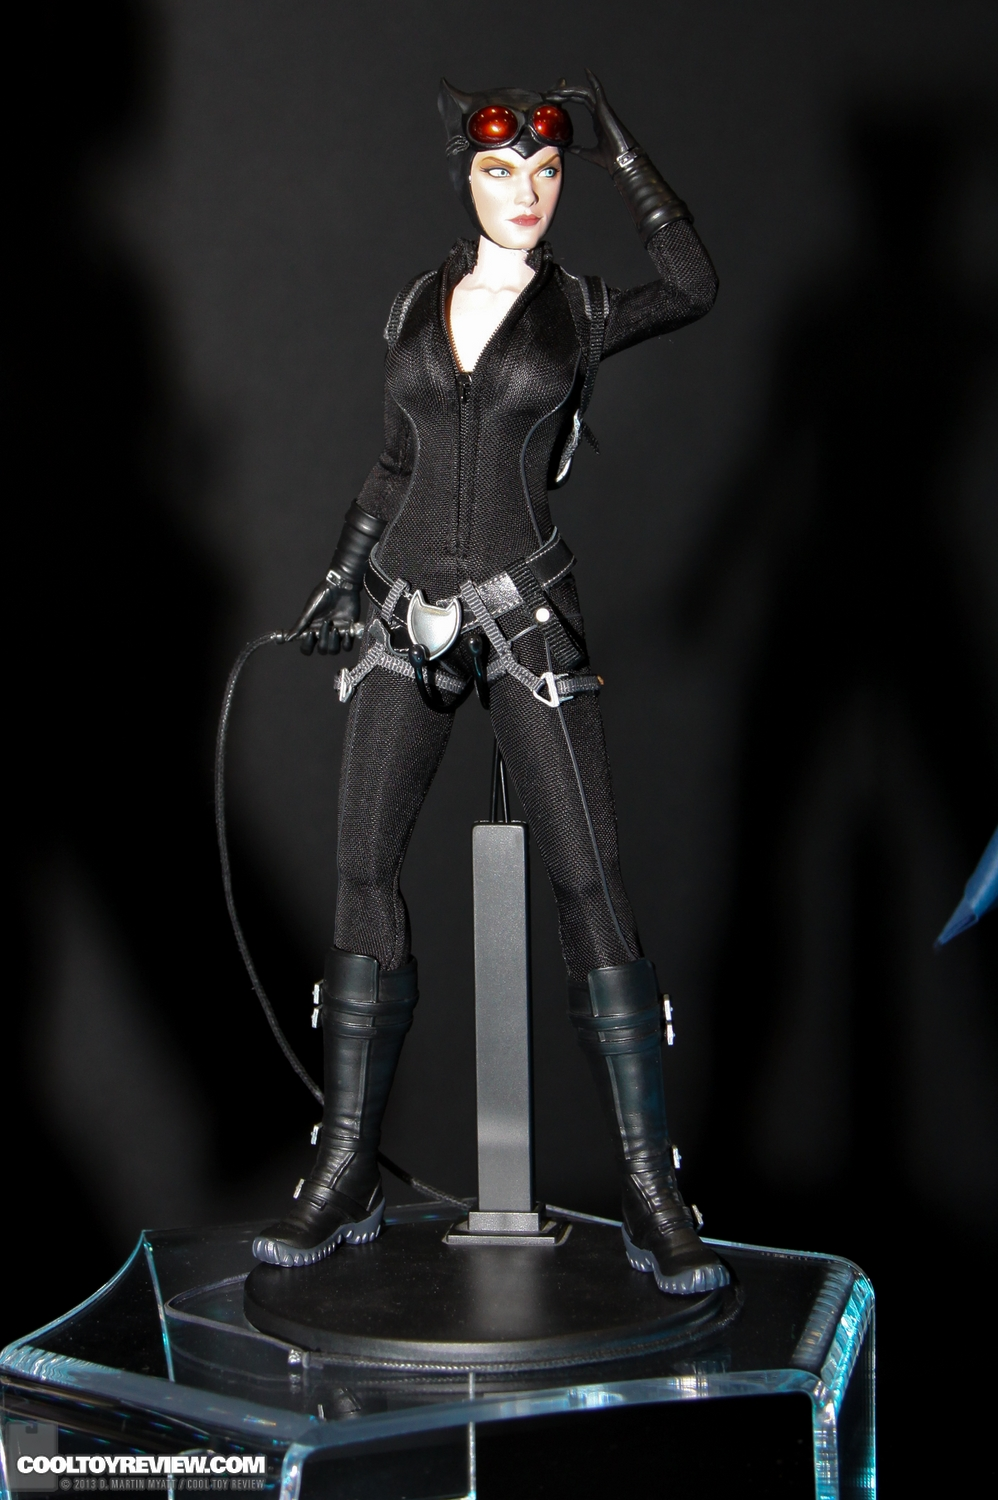 [Sideshow] DC Comics: Catwoman Sixth Scale Figure SDCC_2013_Sideshow_Collectibles_Wed-030